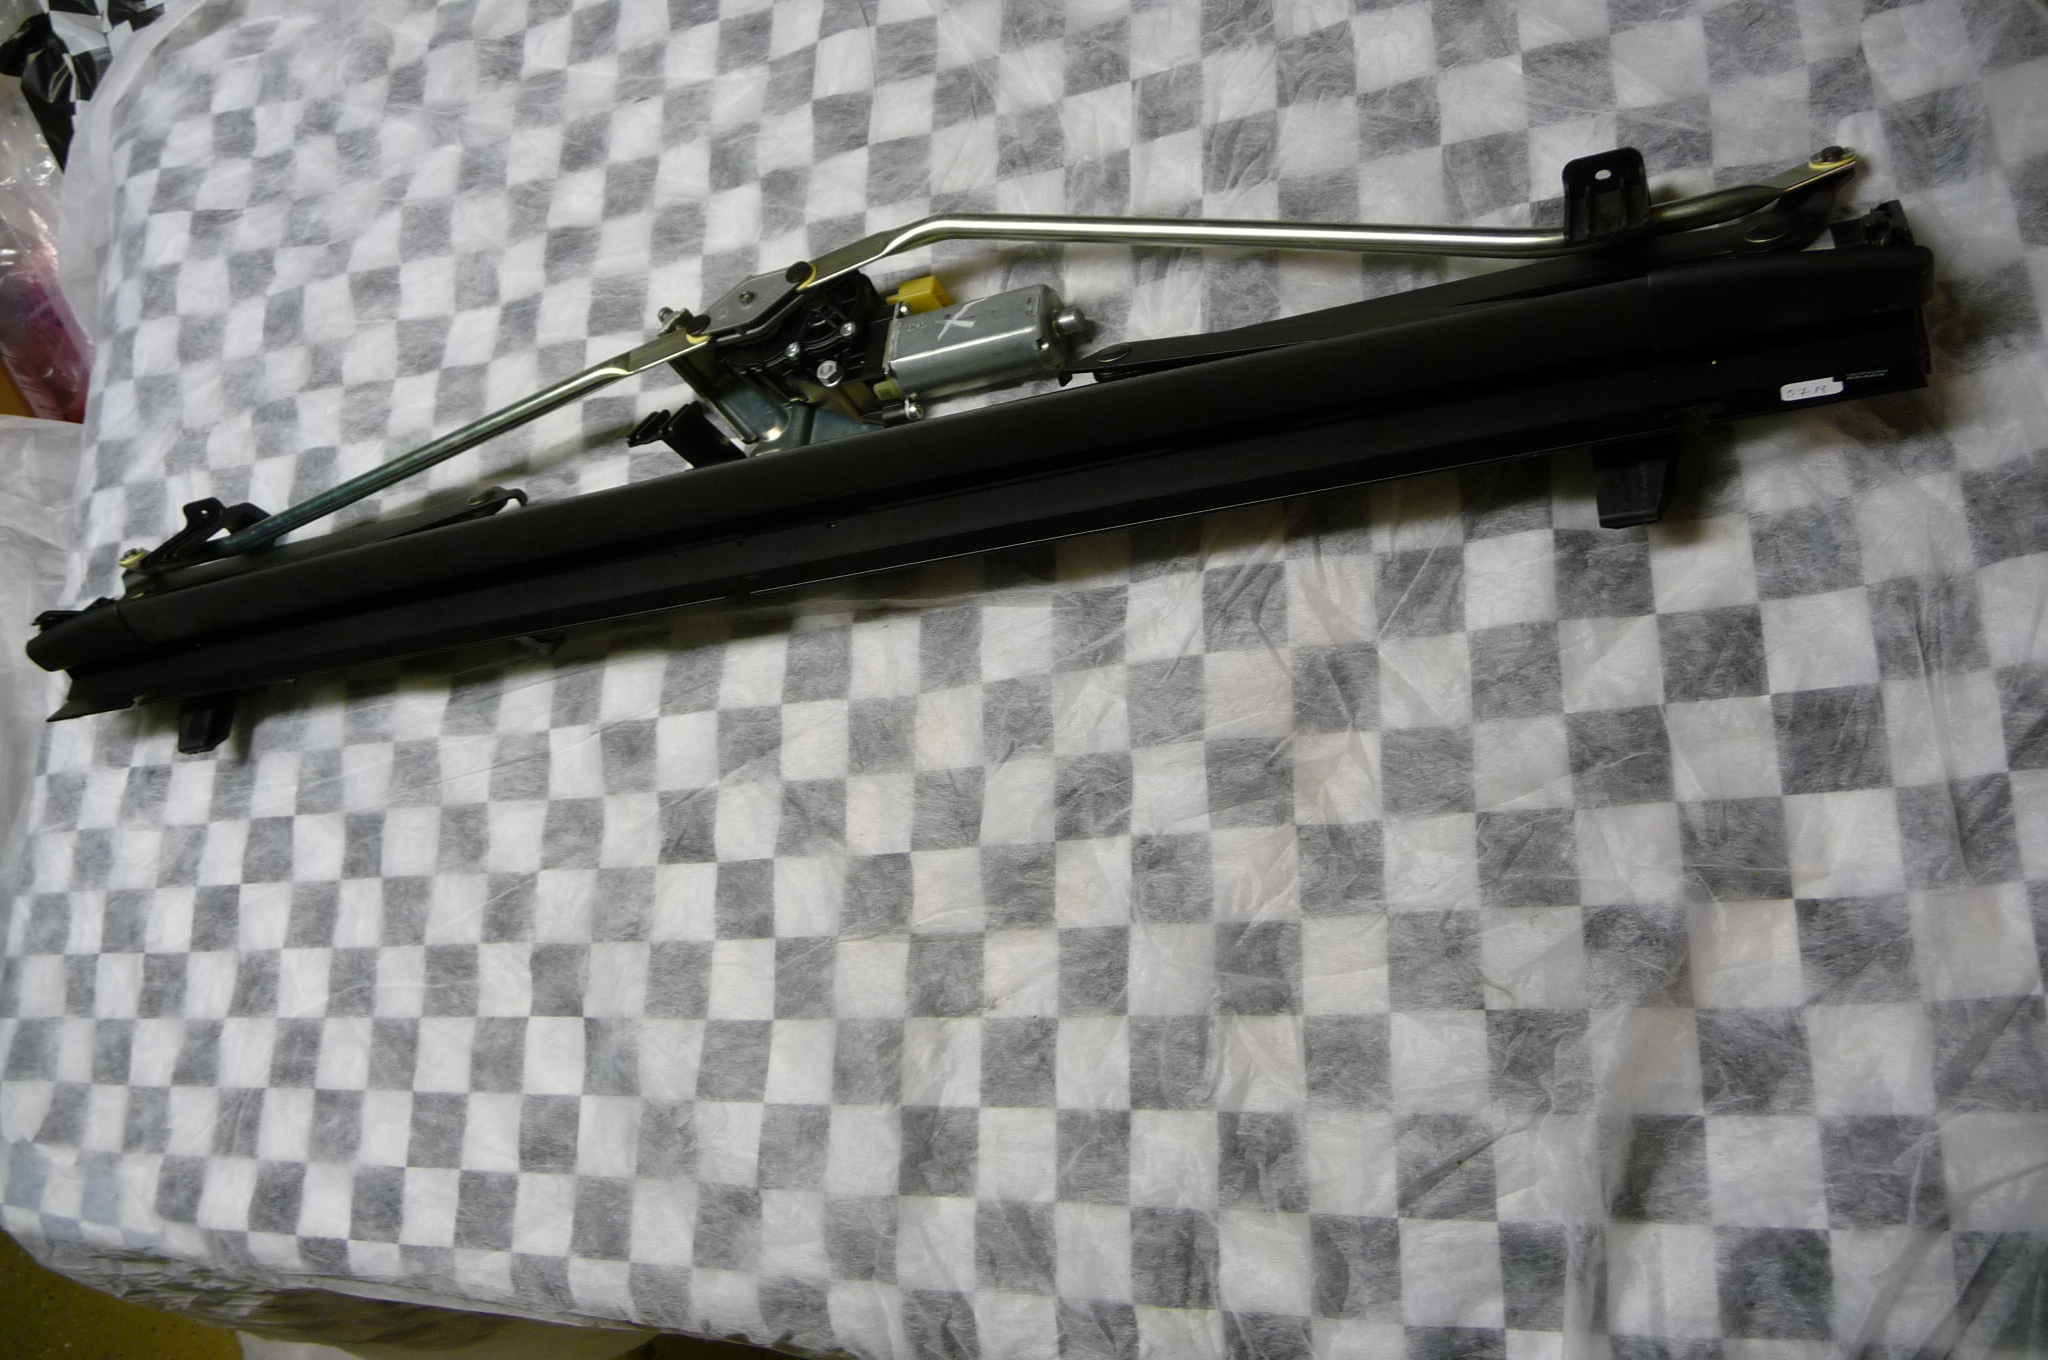 2010 2011 2012 2013 2014 2015 2016 2017 Mercedes Benz C207 E350 E400 E550 Rear Window Sunshade Roller Blind A2078100020 OEM OE